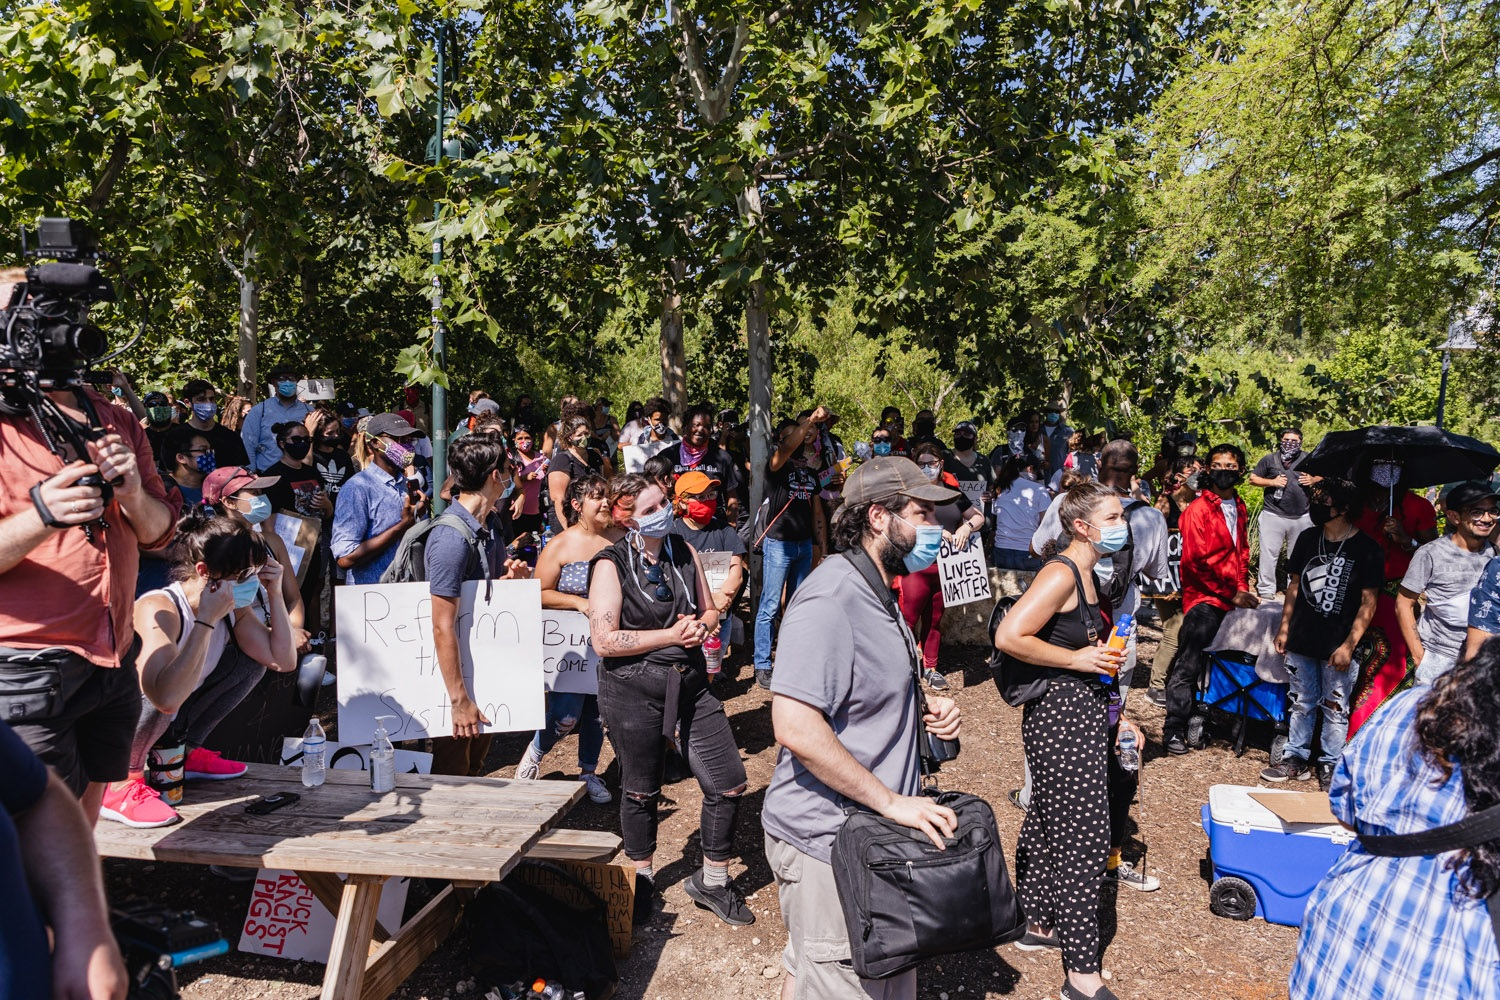 A Black Lives Matter rally takes place Monday, June 8, 2020, at Blue Star Arts Complex. <b>Photo by Isaiah Alonzo | Heron contributor</b>